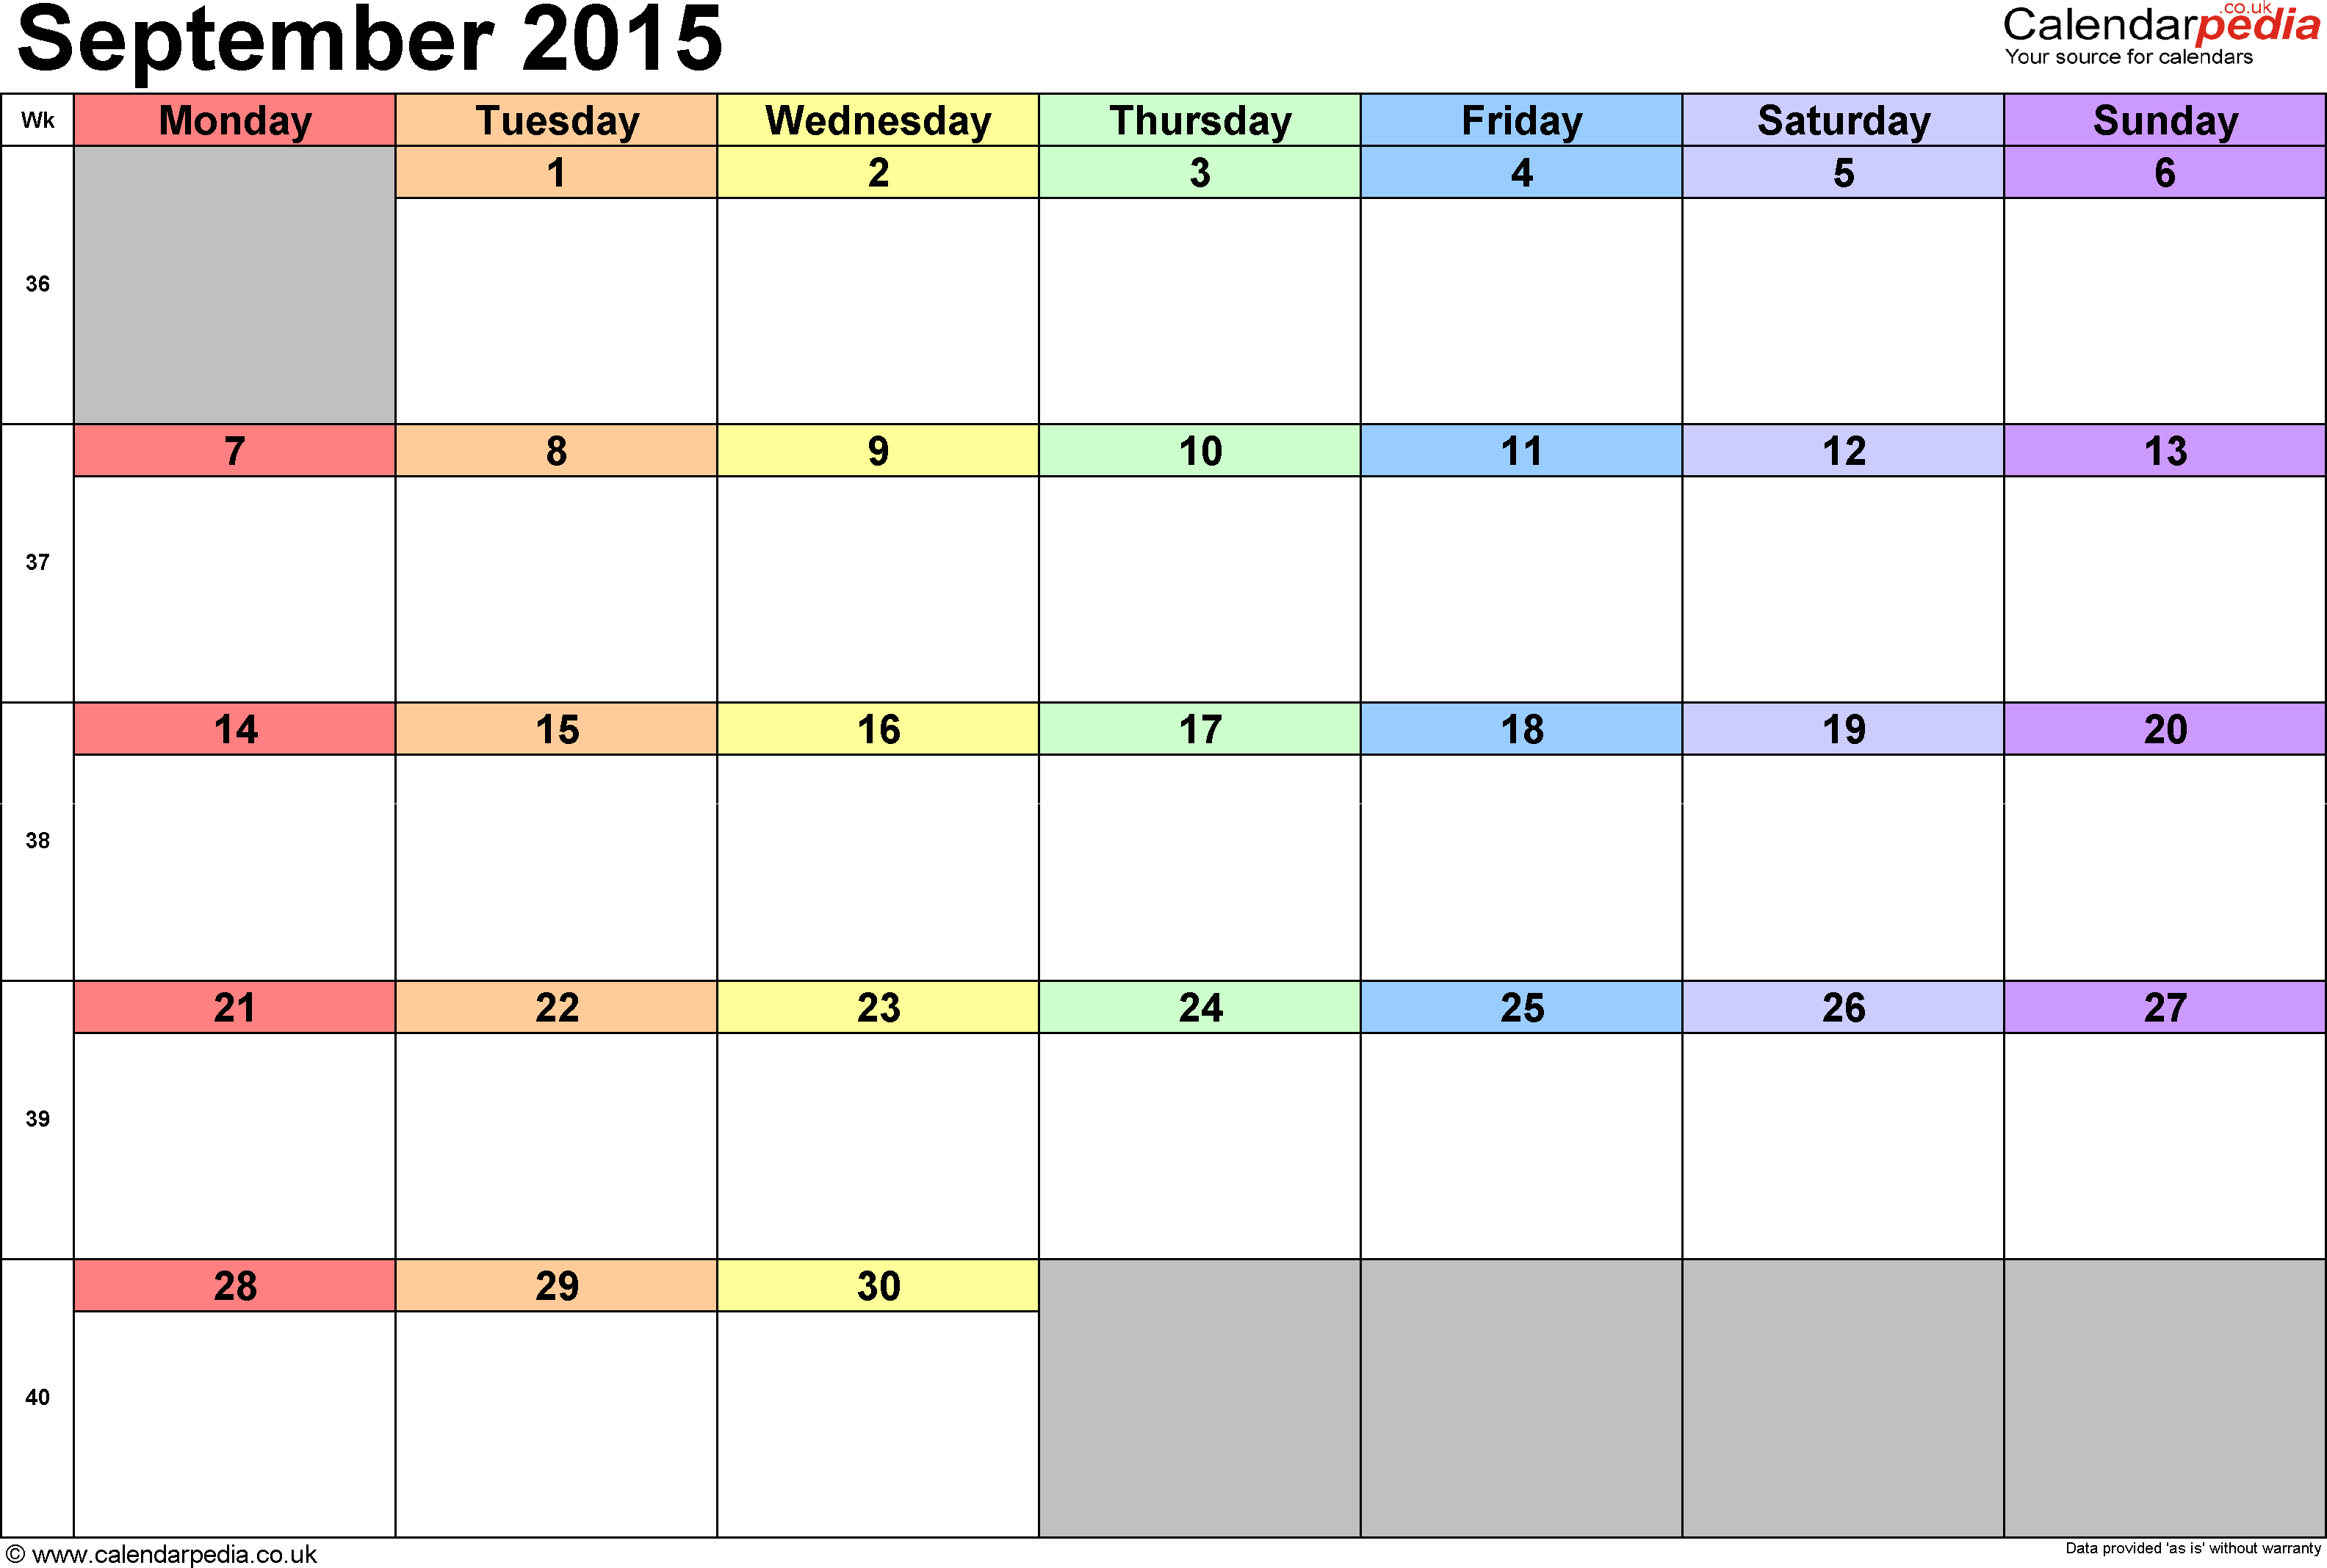 Calendar September 2015, landscape orientation, 1 page, with UK bank holidays and week numbers